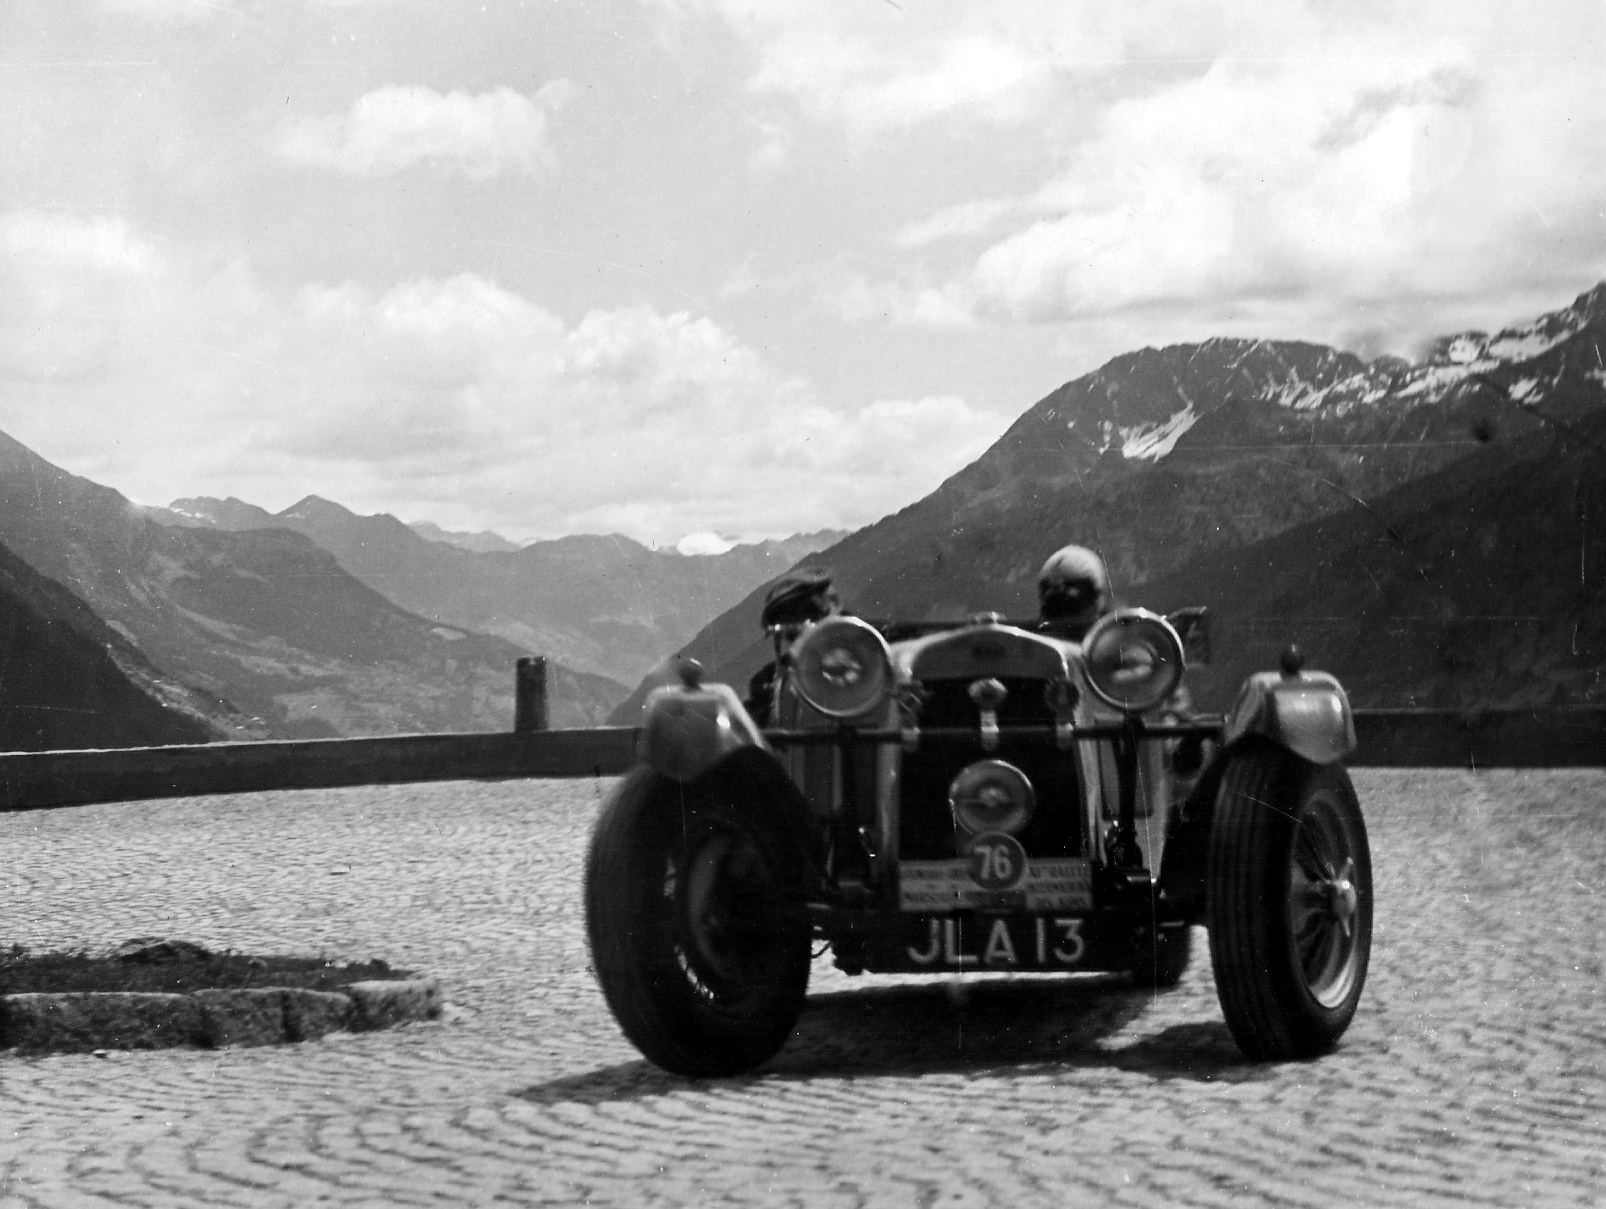 Rally Motor Credit >> More About The 1948 Alpine Rally Hrg Car